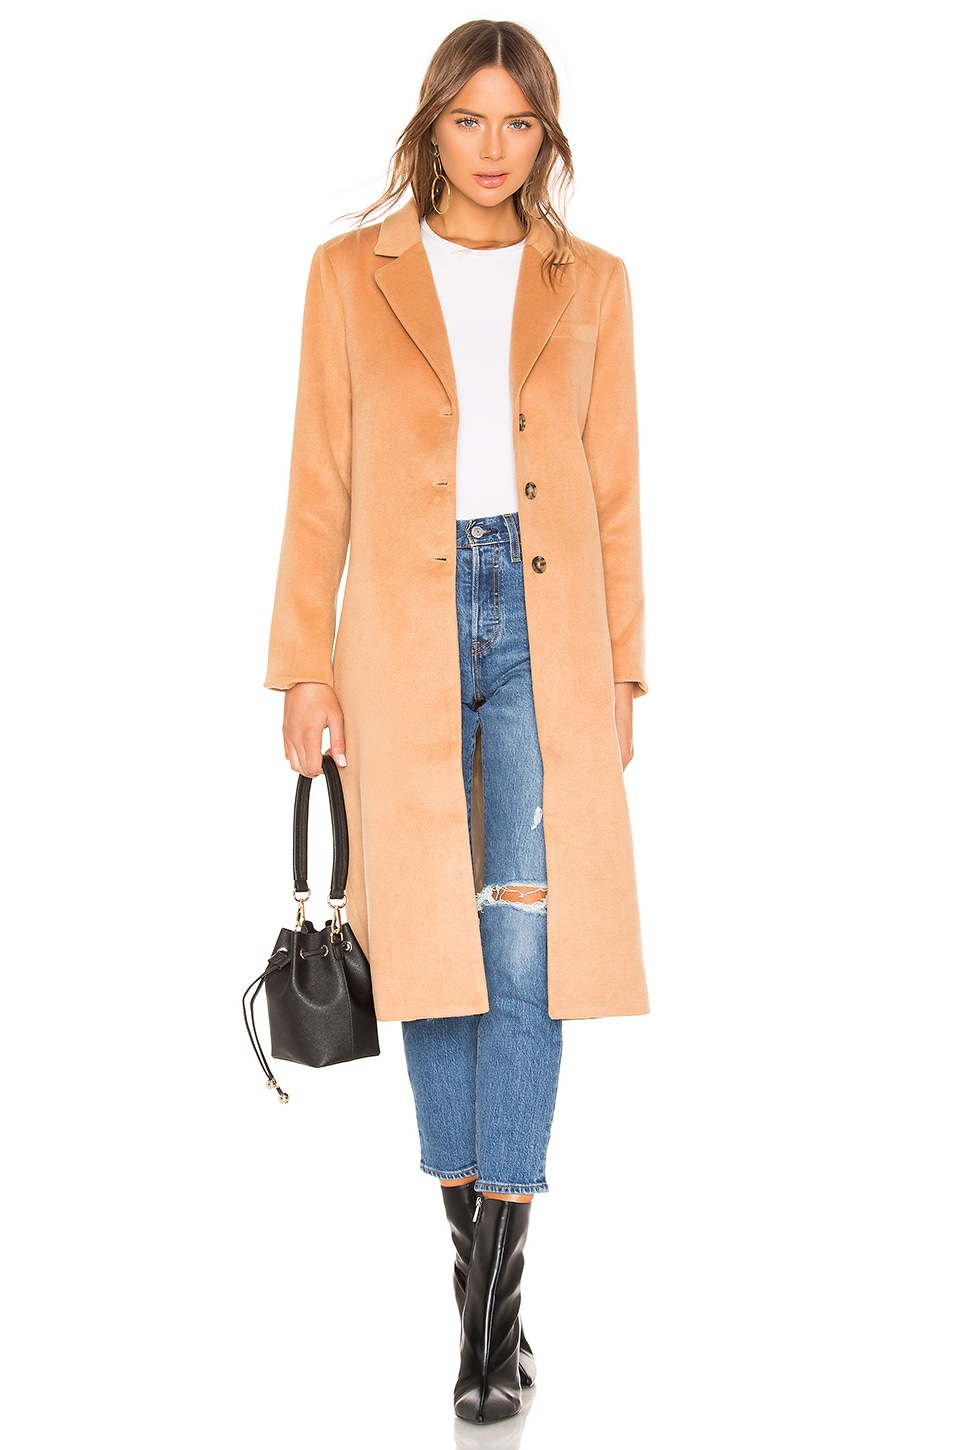 L'ACADEMIE The Tyler Coat in Tan